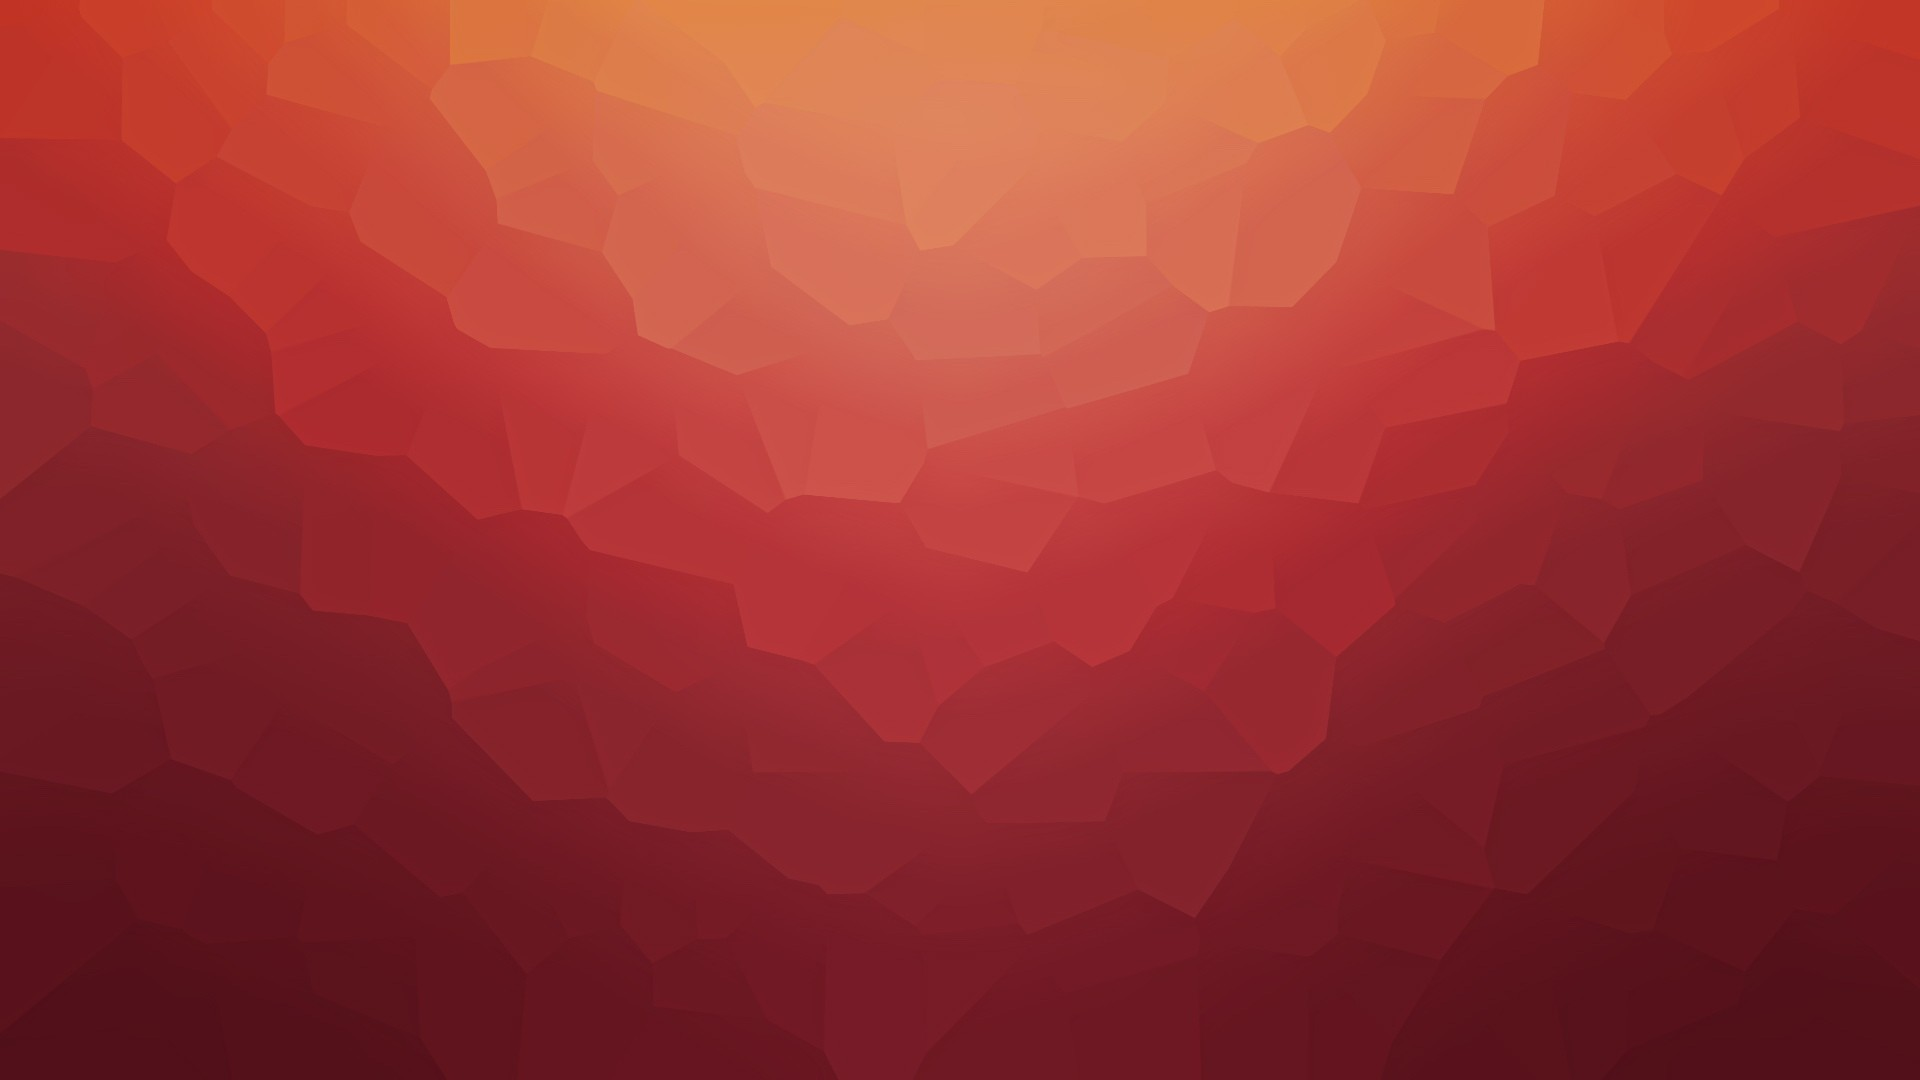 15+ Flat Design HD Wallpapers for Windows 10